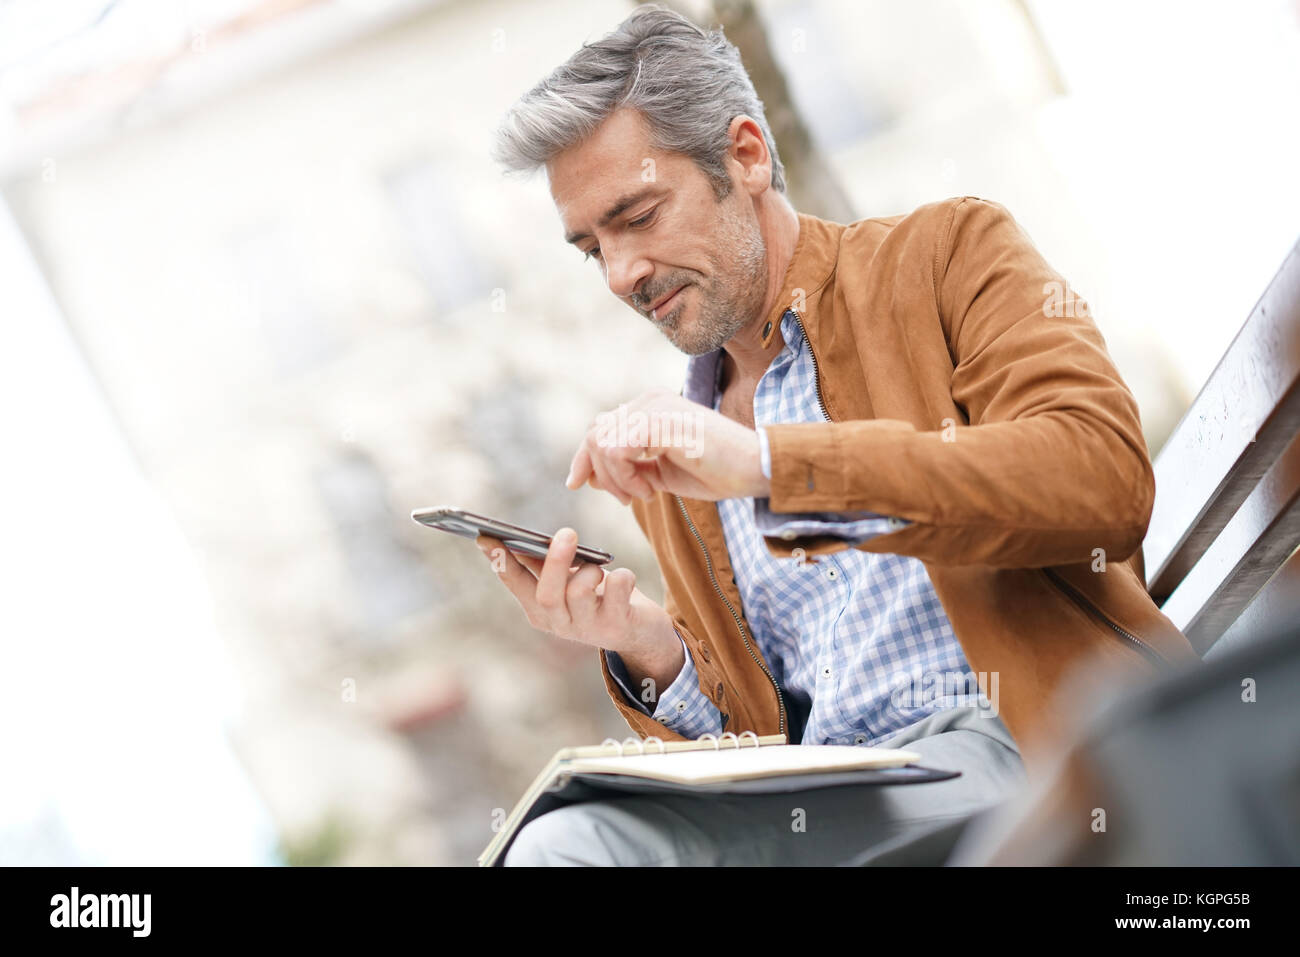 Businessman sitting on public bench, scheduling working day - Stock Image